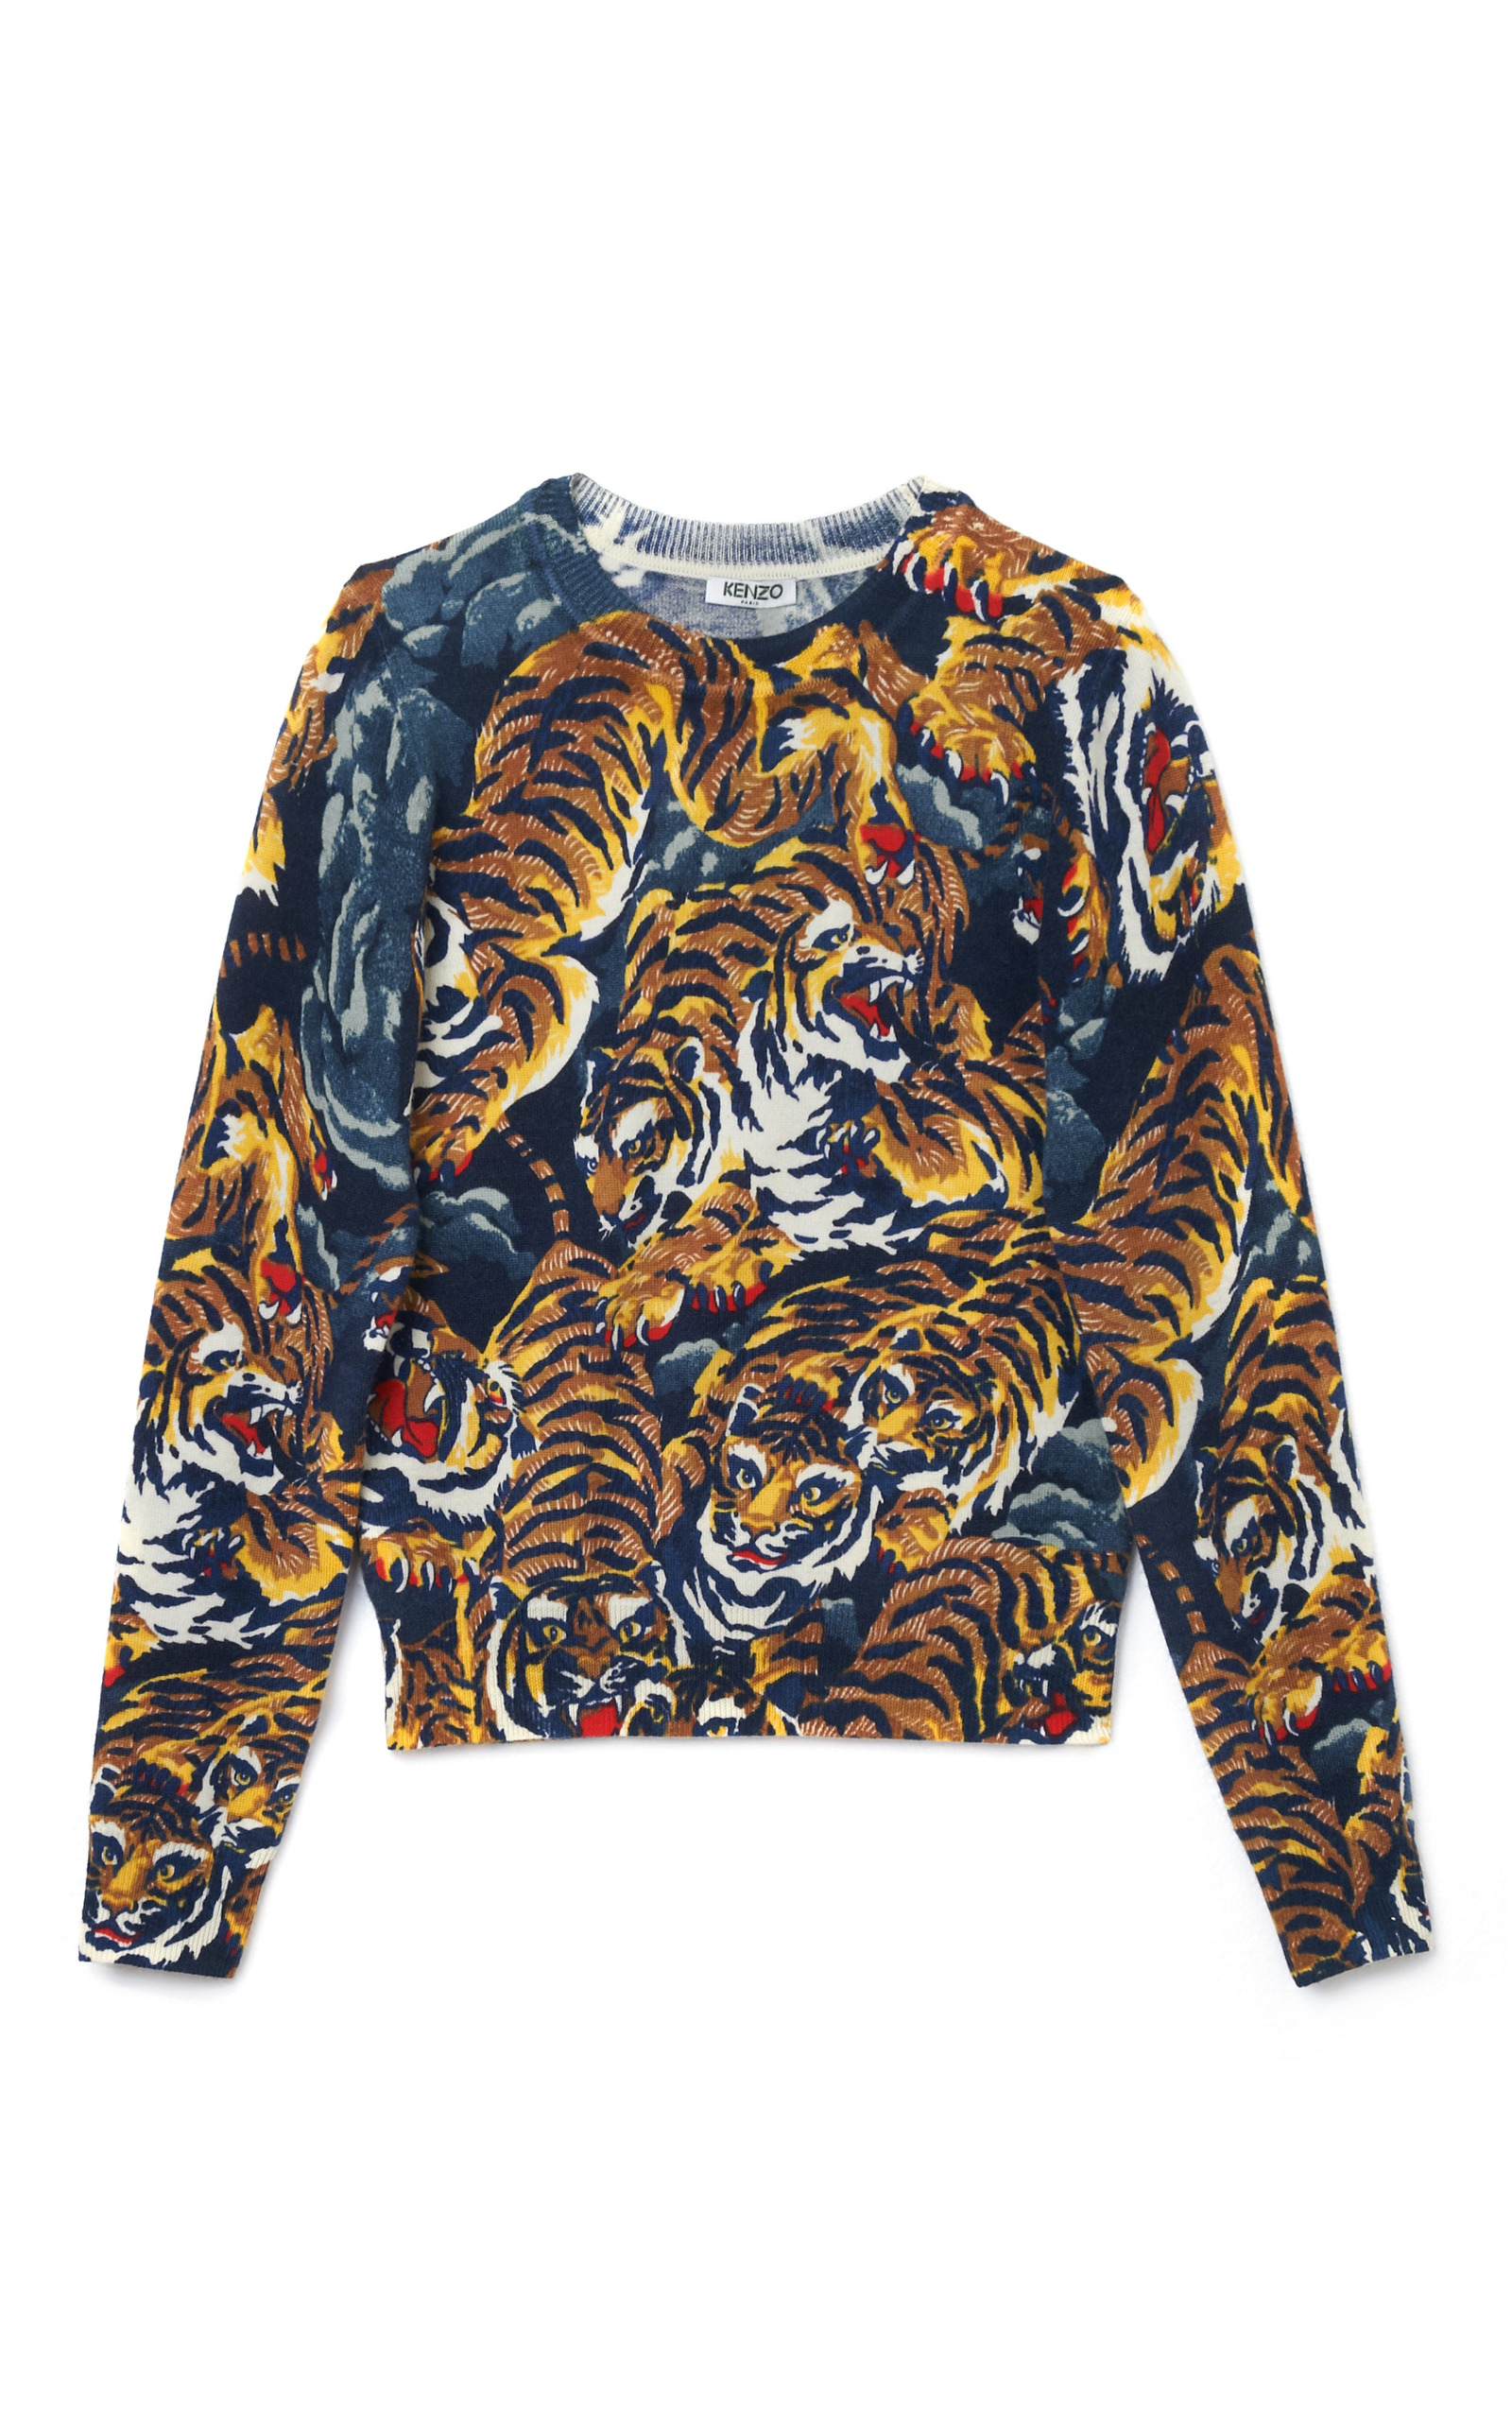 By Operandi Flying KenzoModa Tigers Sweater LjqMGzVUSp